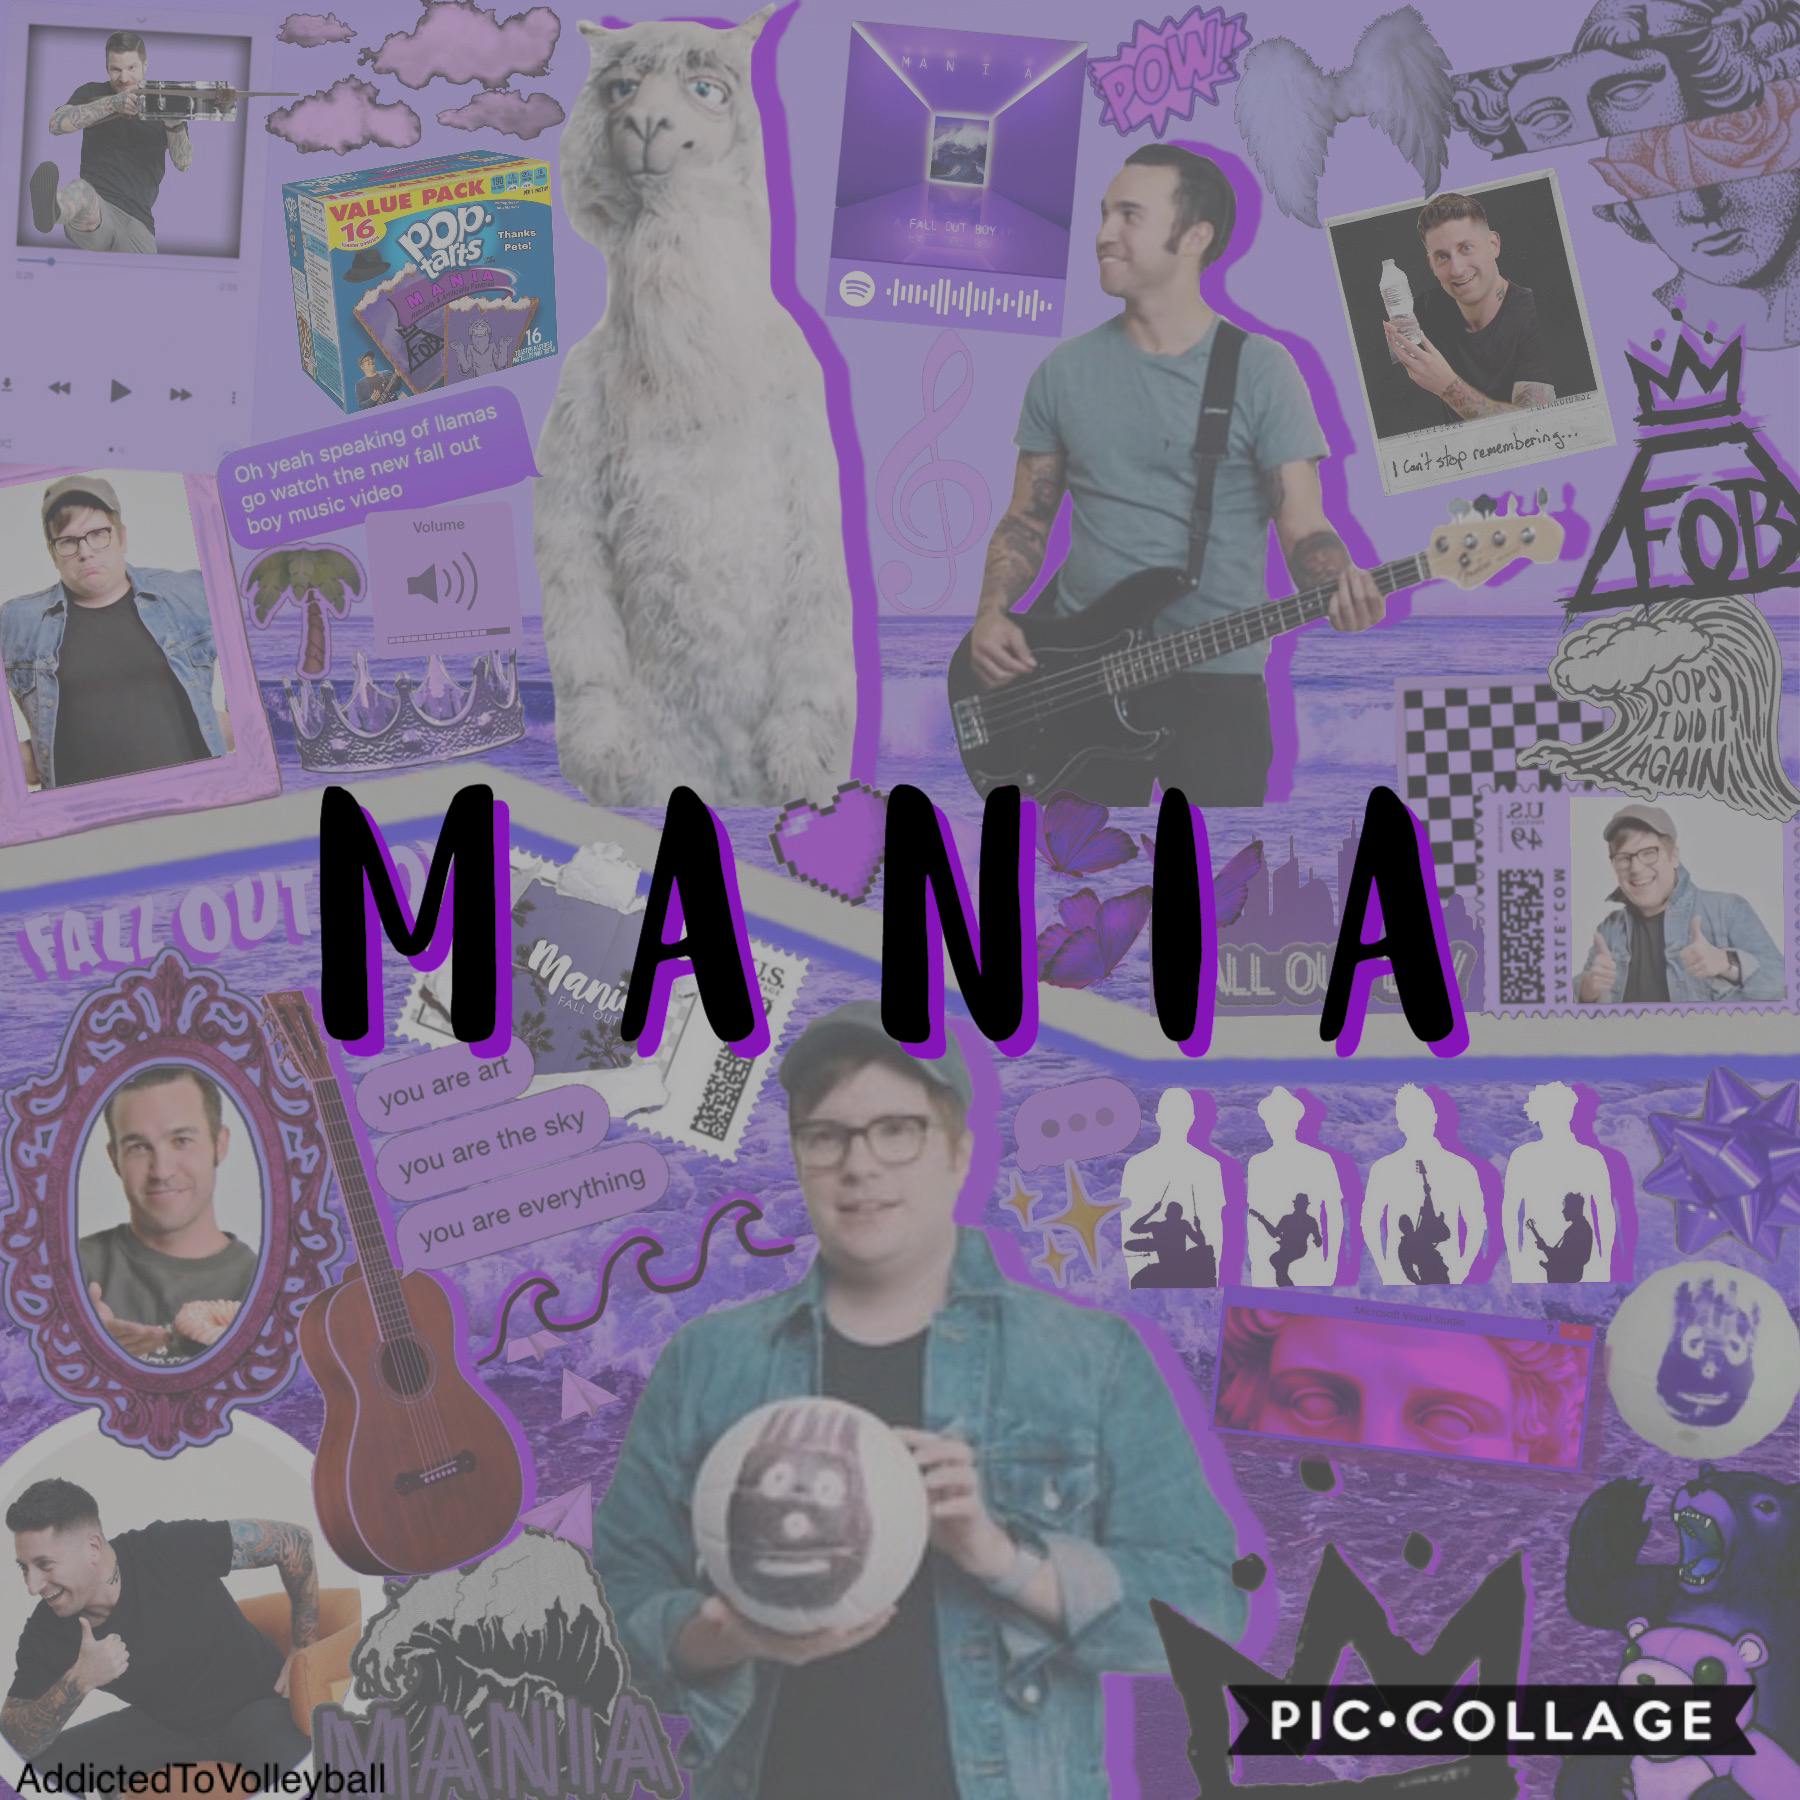 1-19-20 - two years! - tap! happy birthday to the album that saved my life. 💜 pls take this rlly horrible collage thanks 🤠 Mania means so much to me & for it to be 2 blows my mind 🤯 QOTD: fave song on MANIA? AOTD: Bishops Knife Trick 💜